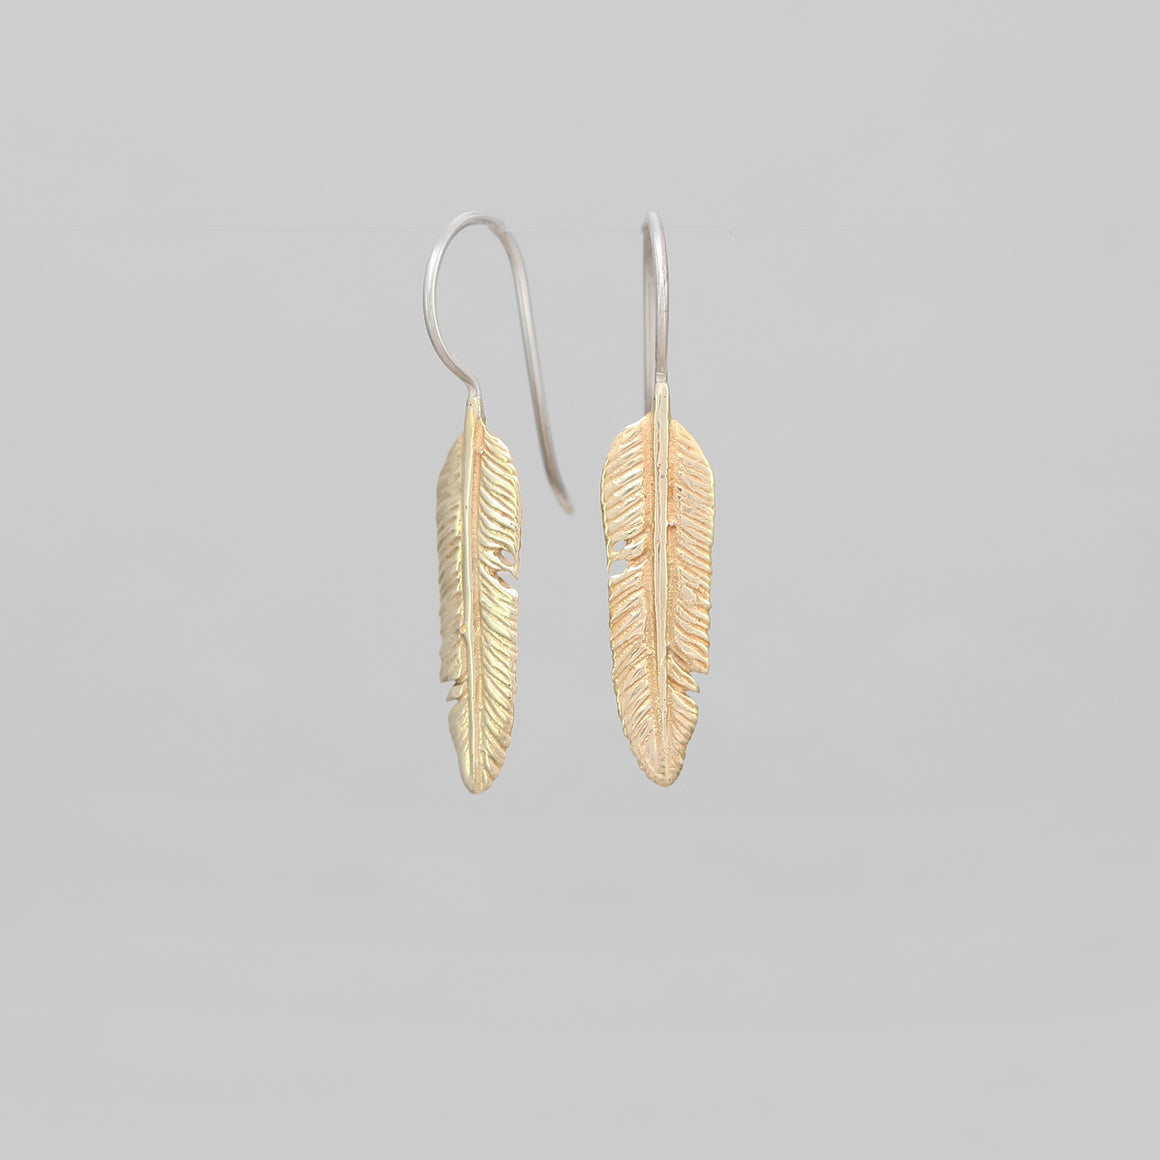 SMALL YELLOW BRASS FEATHER DROP EARRINGS